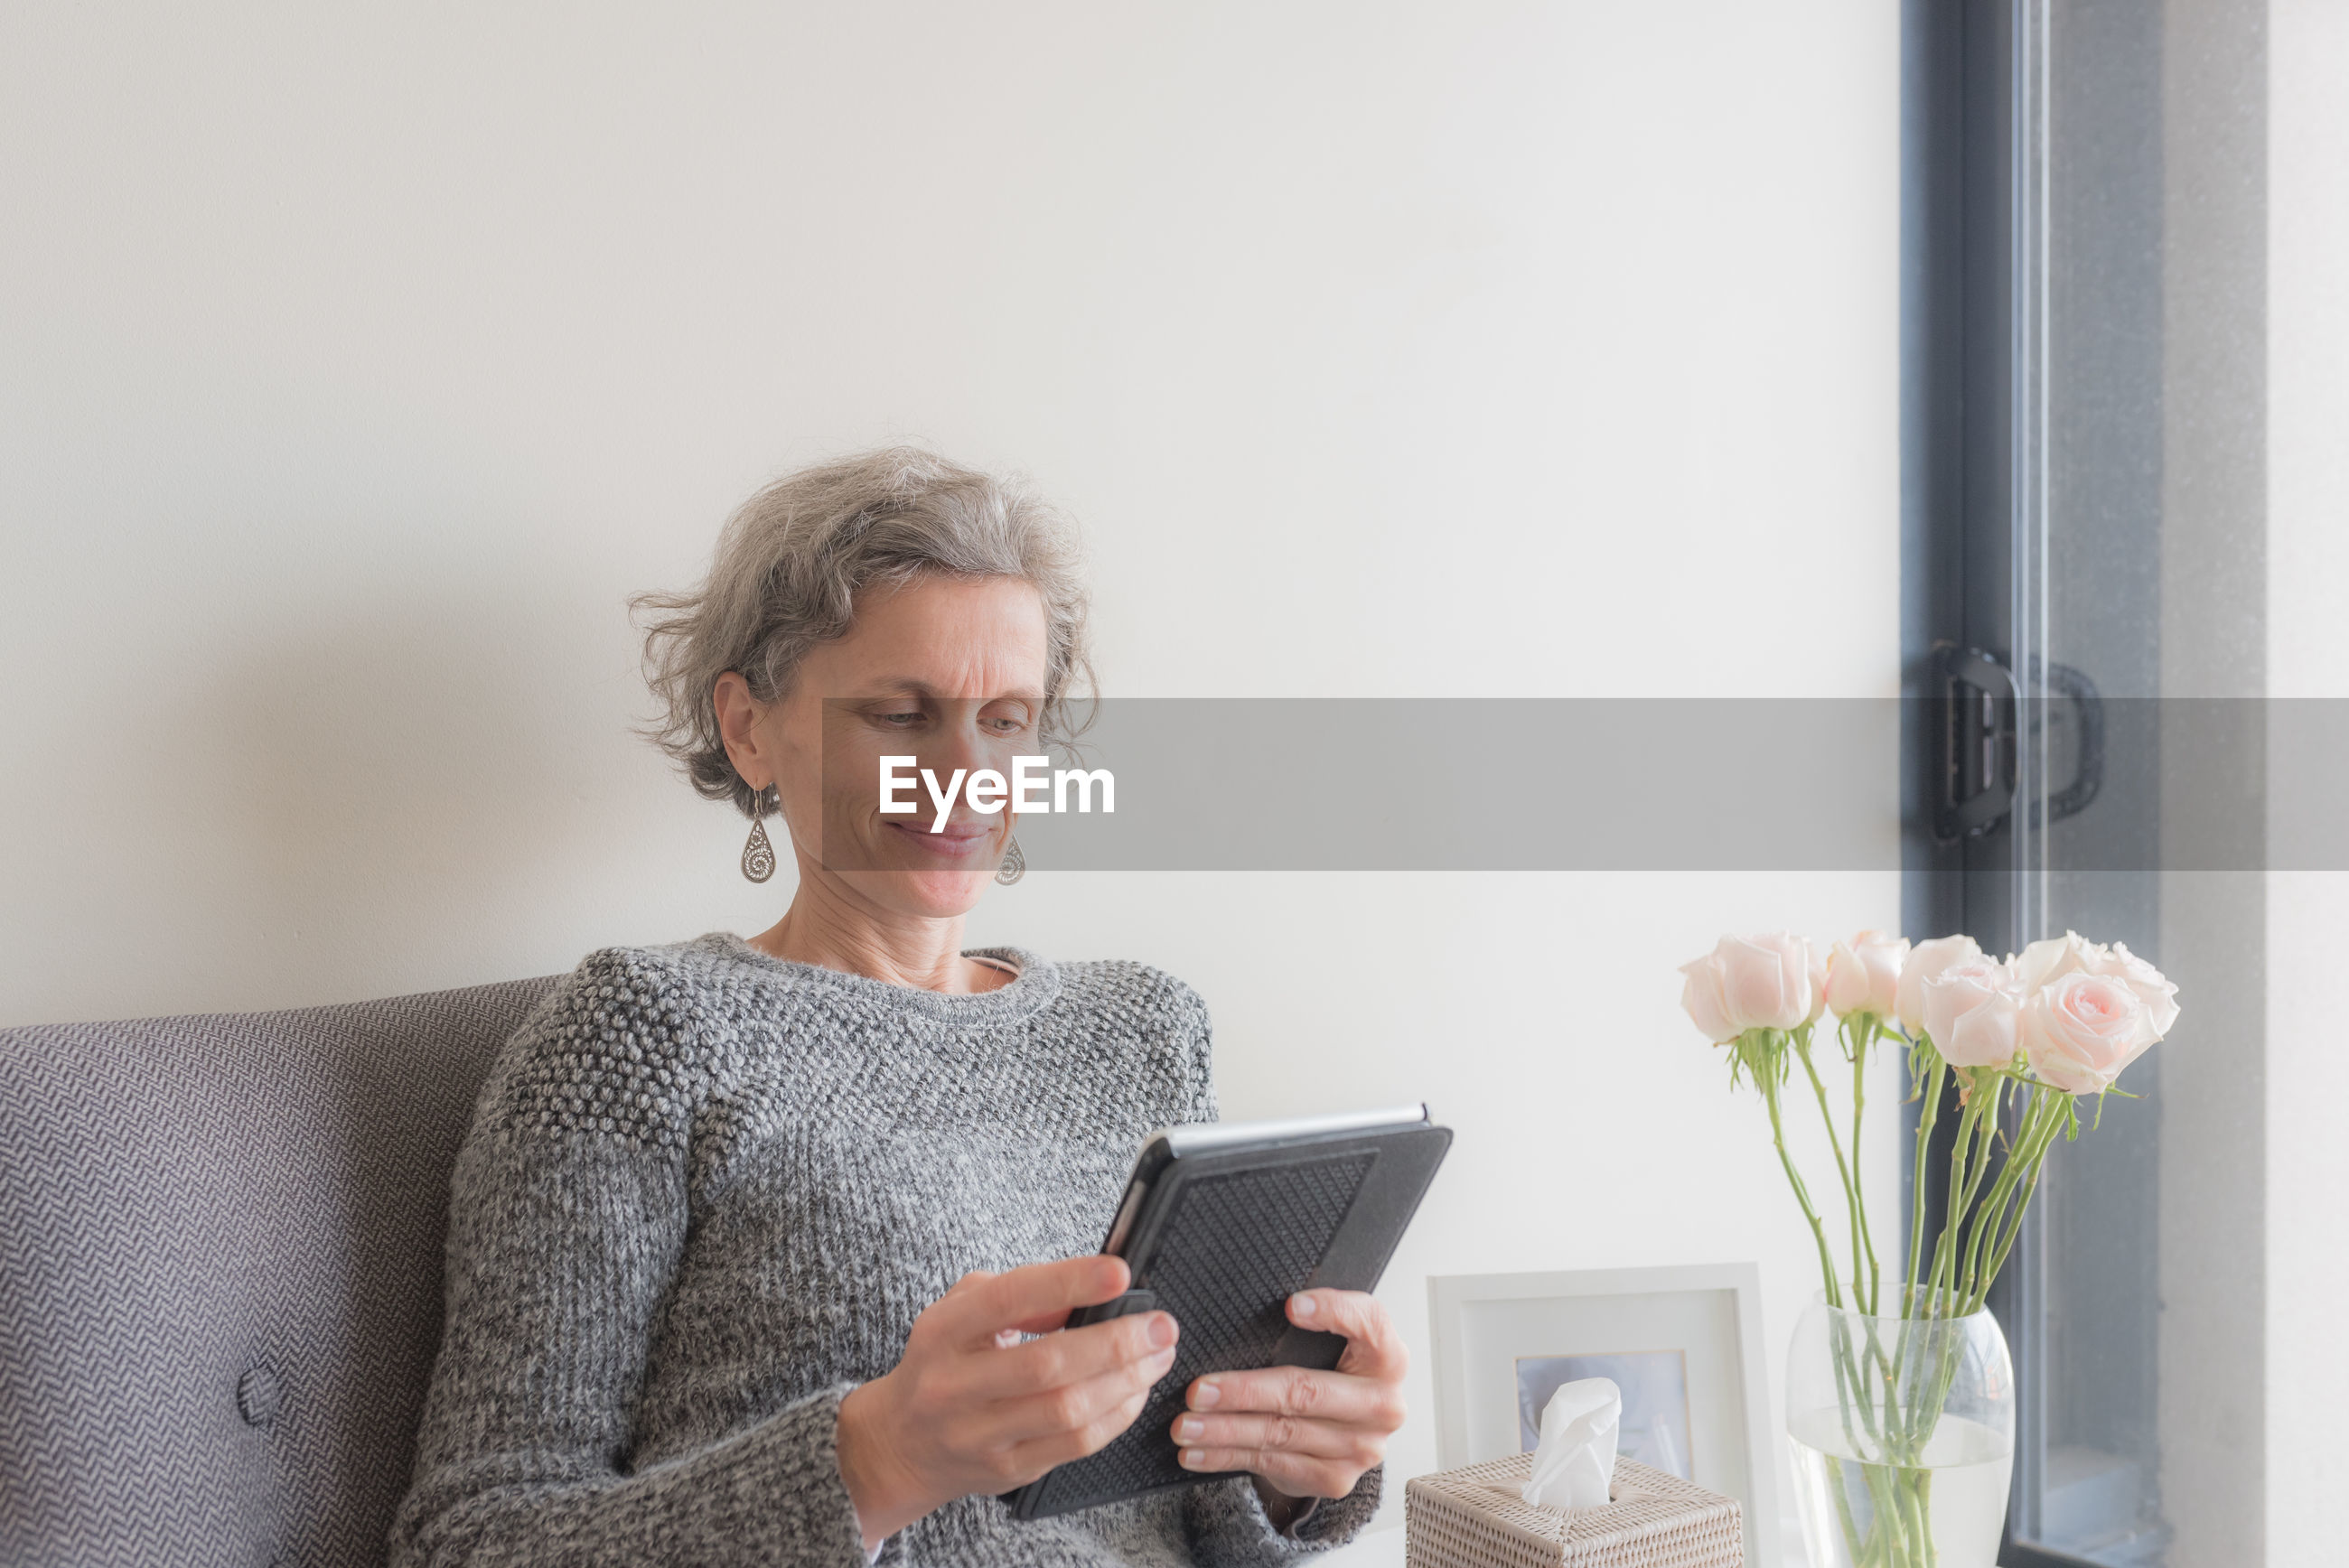 Smiling woman using digital tablet while sitting on chair at home